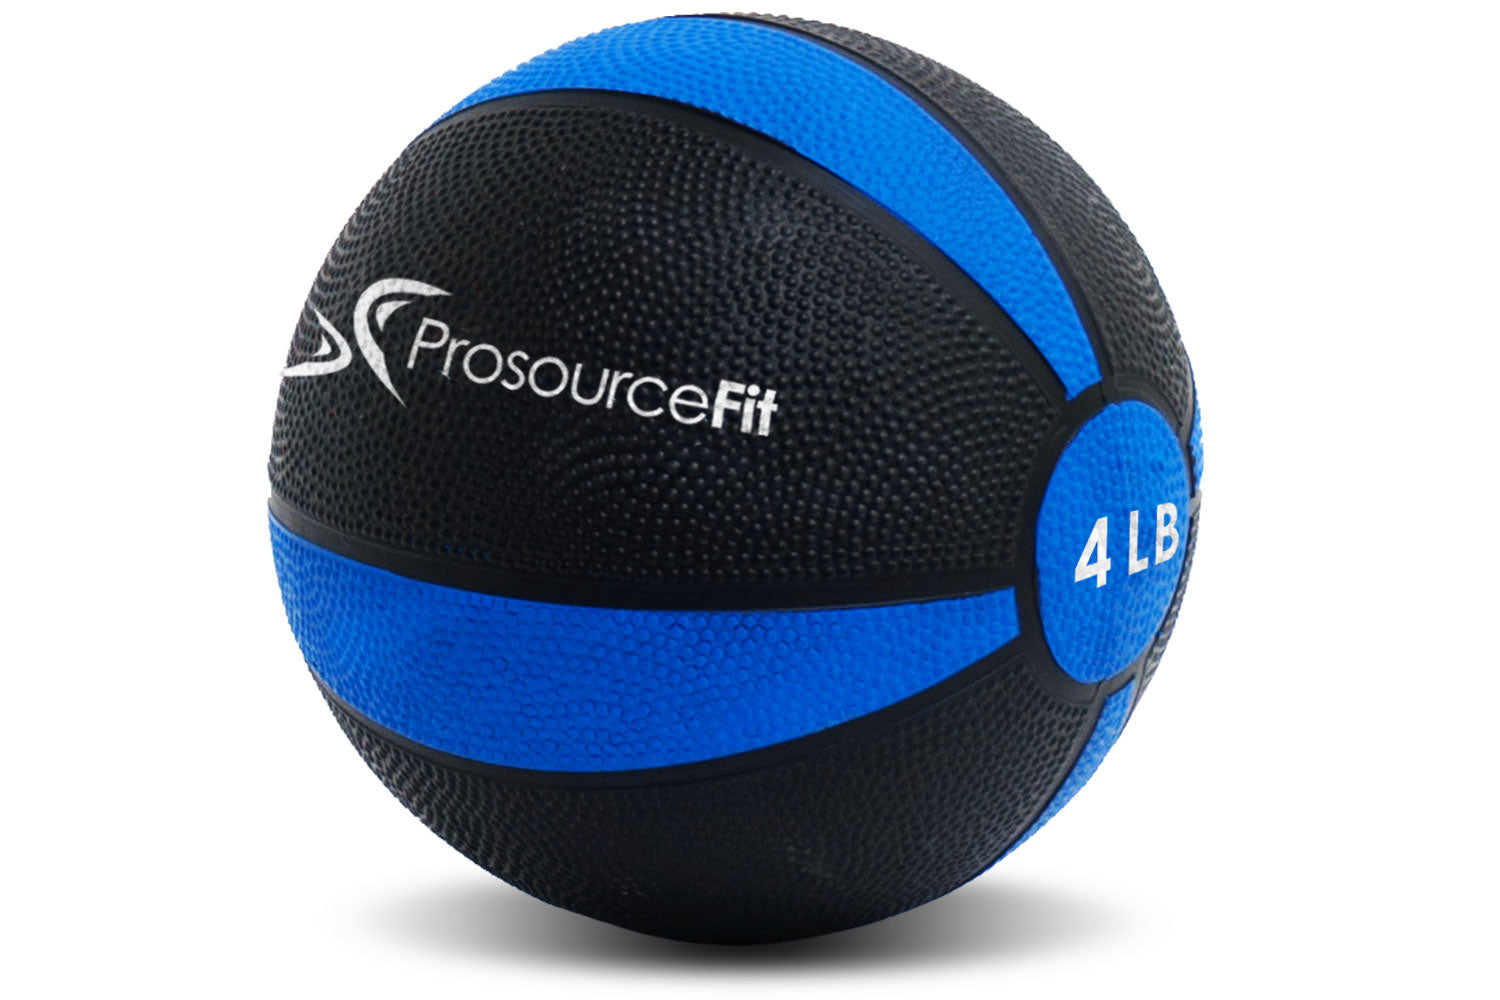 4 lb Rubber Medicine Ball